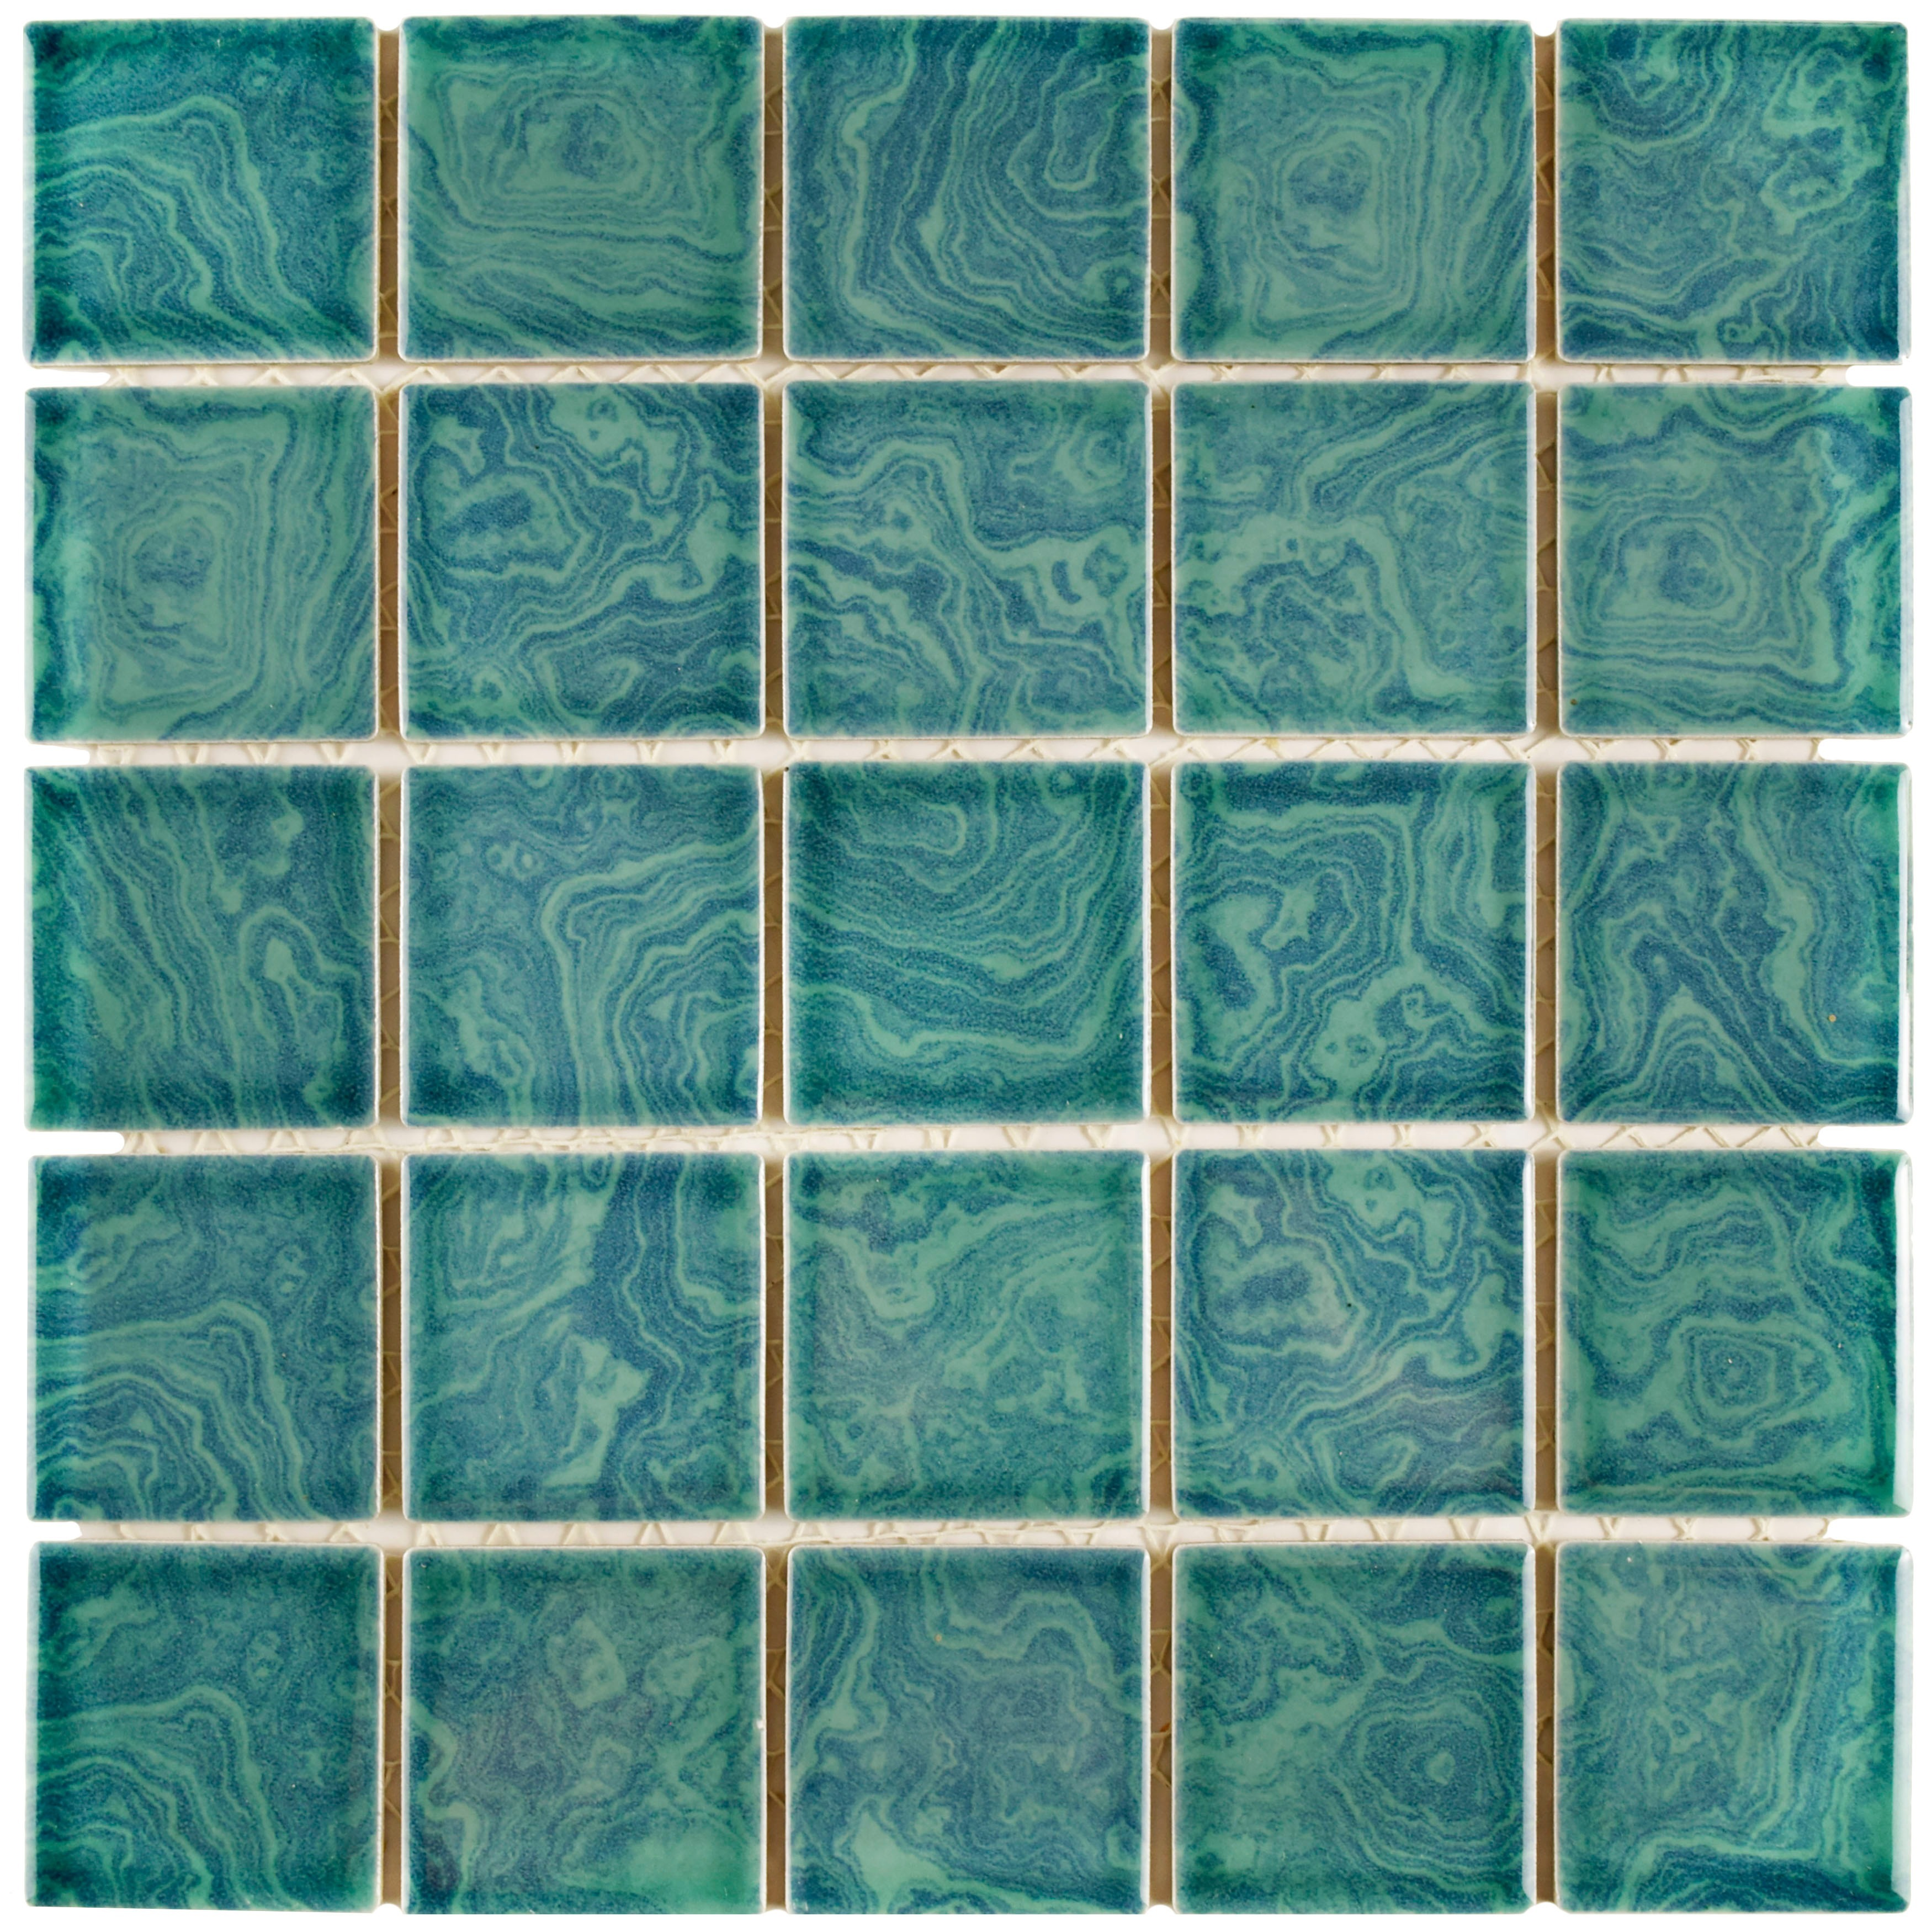 Somertile 12x12 inch paradise palm green porcelain mosaic floor somertile 12x12 inch paradise palm green porcelain mosaic floor and wall tile pack of 10 free shipping today overstock 15927173 dailygadgetfo Choice Image